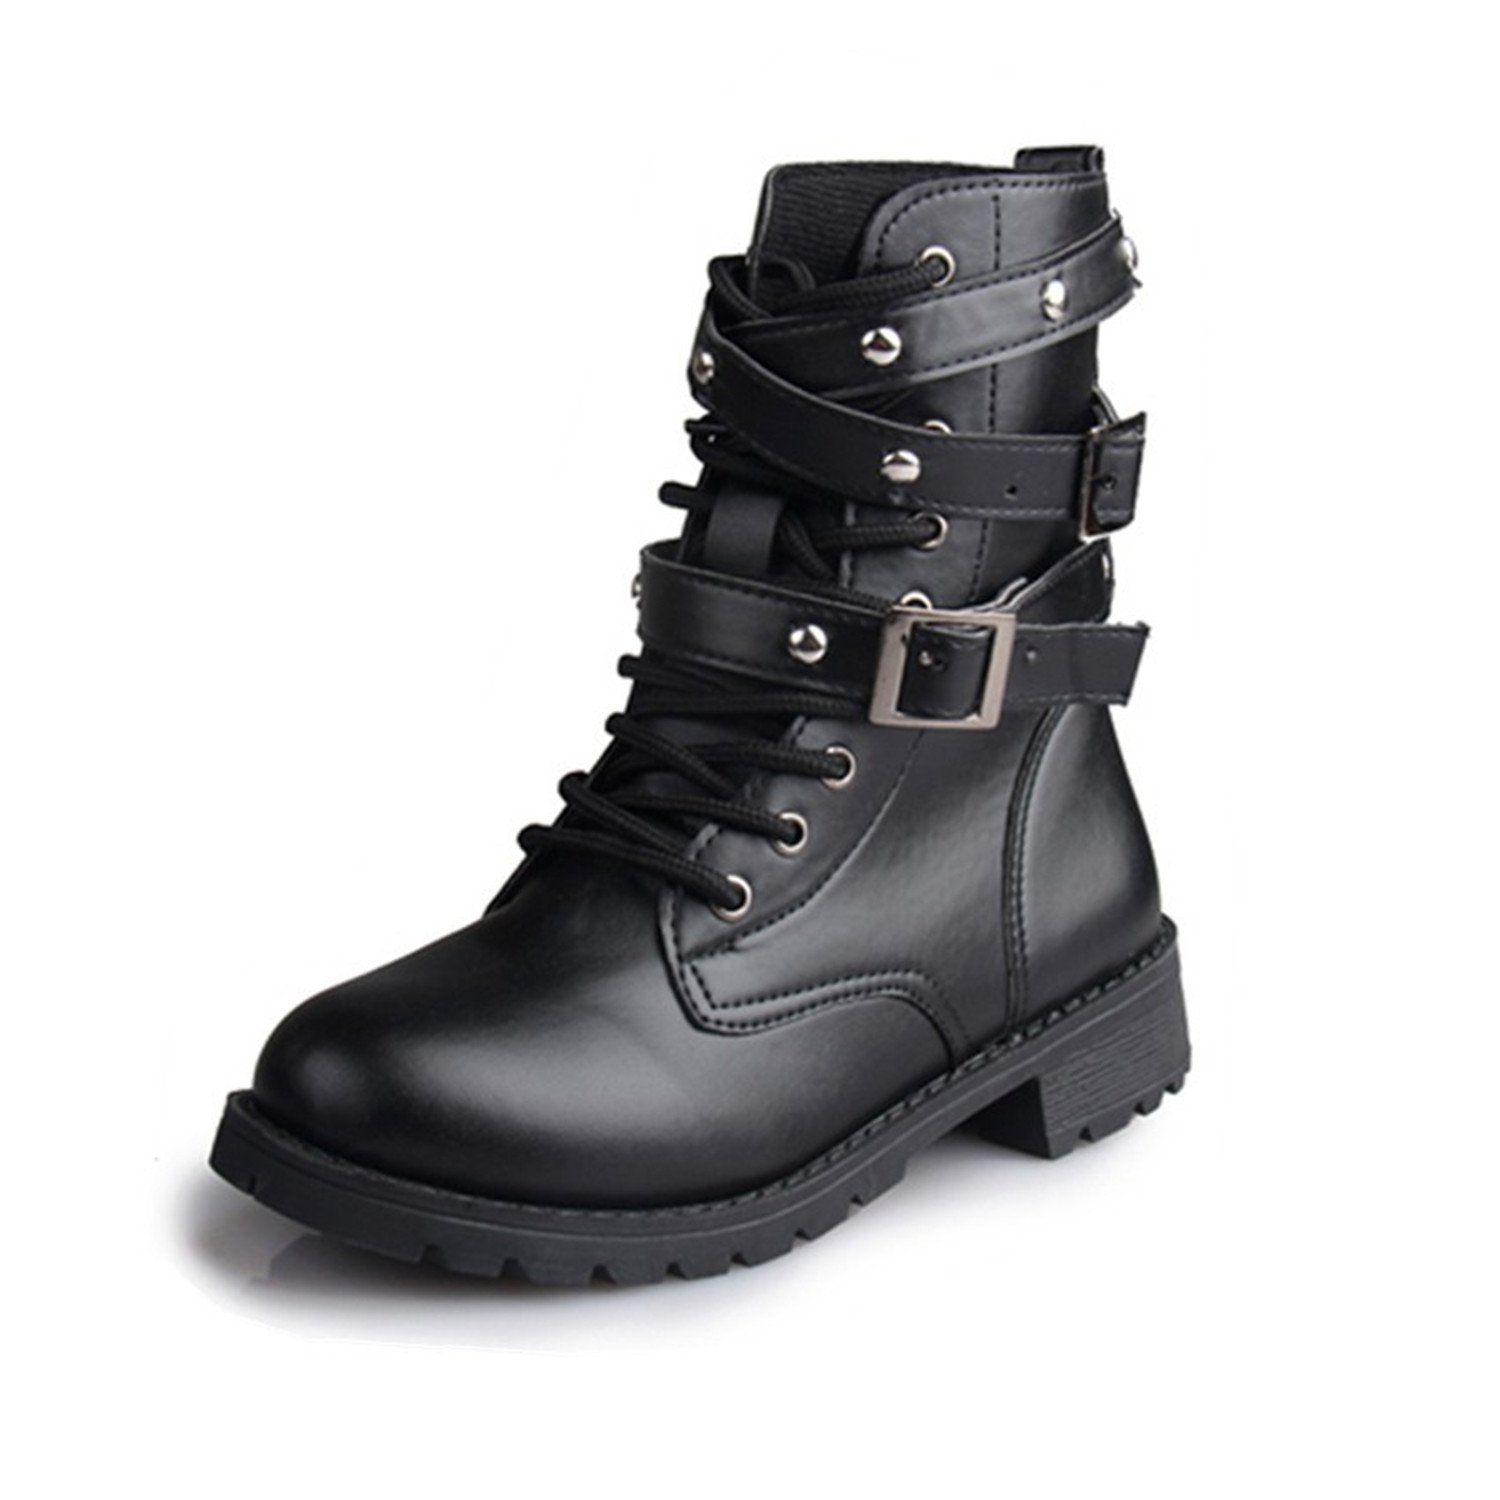 Desirca Women Motorcycle Boots Ladies Vintage Rivet Army Punk Goth